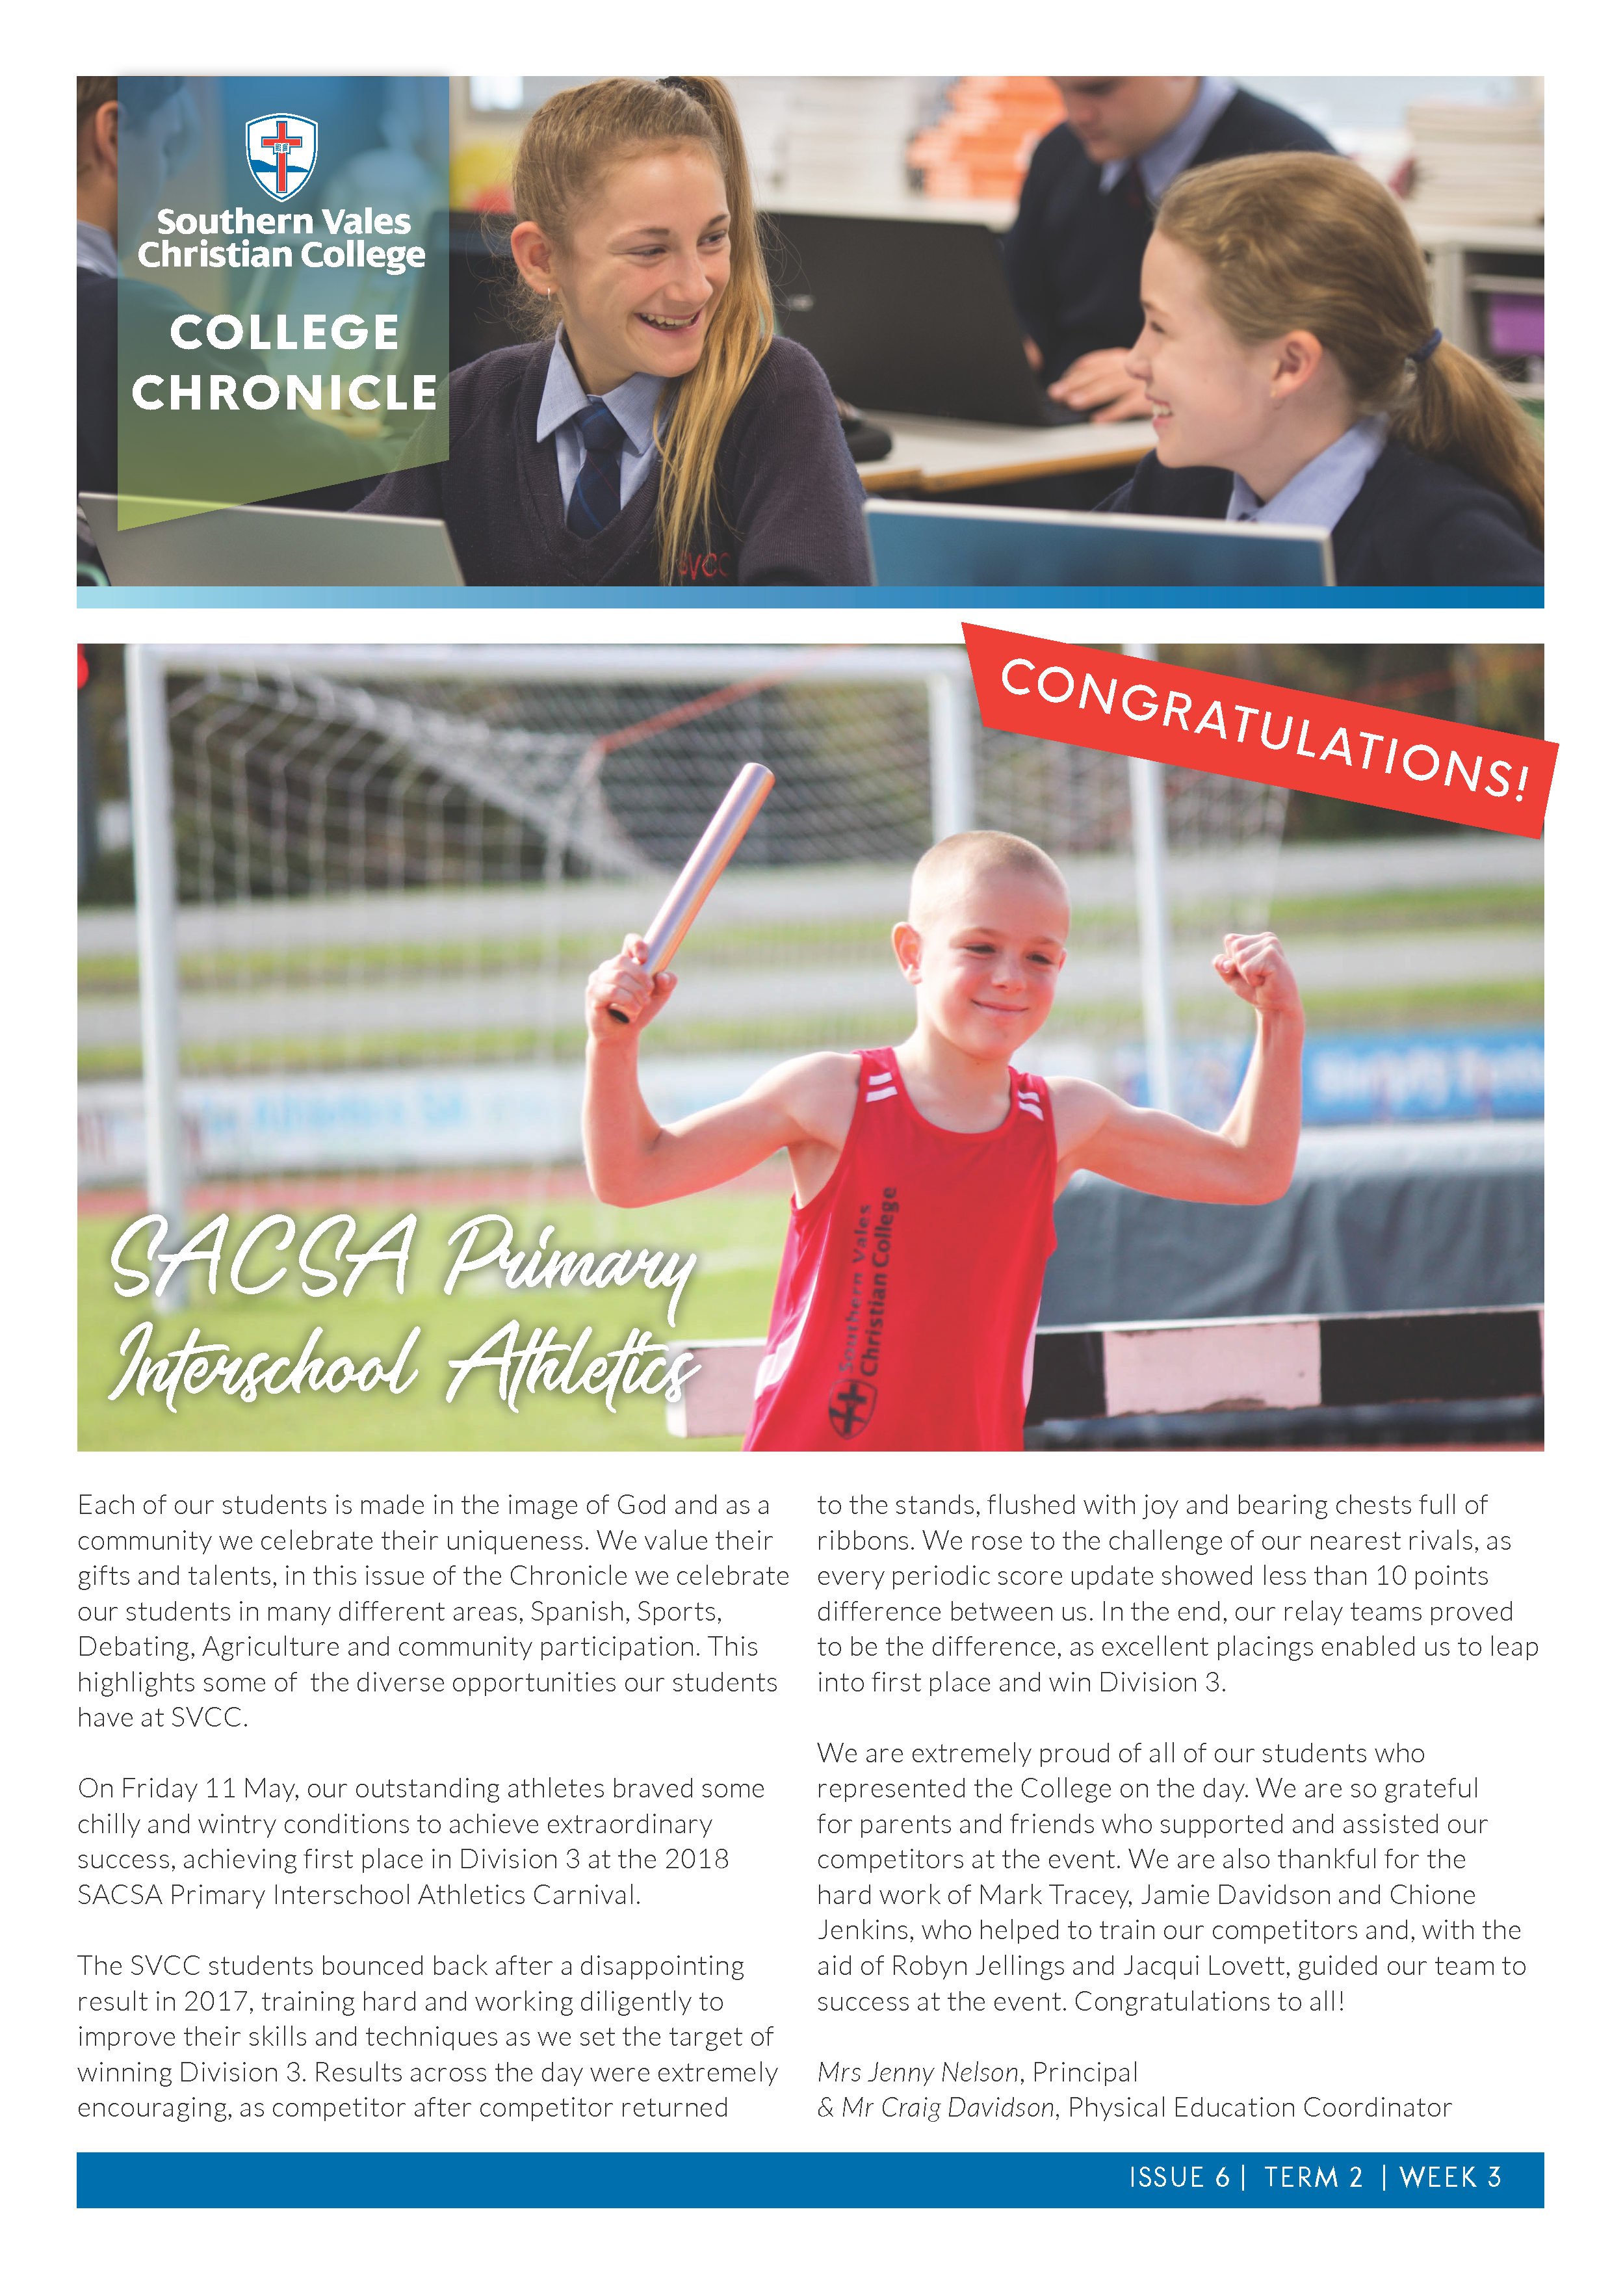 College Chronicle Issue 6 2018_Page_1.png